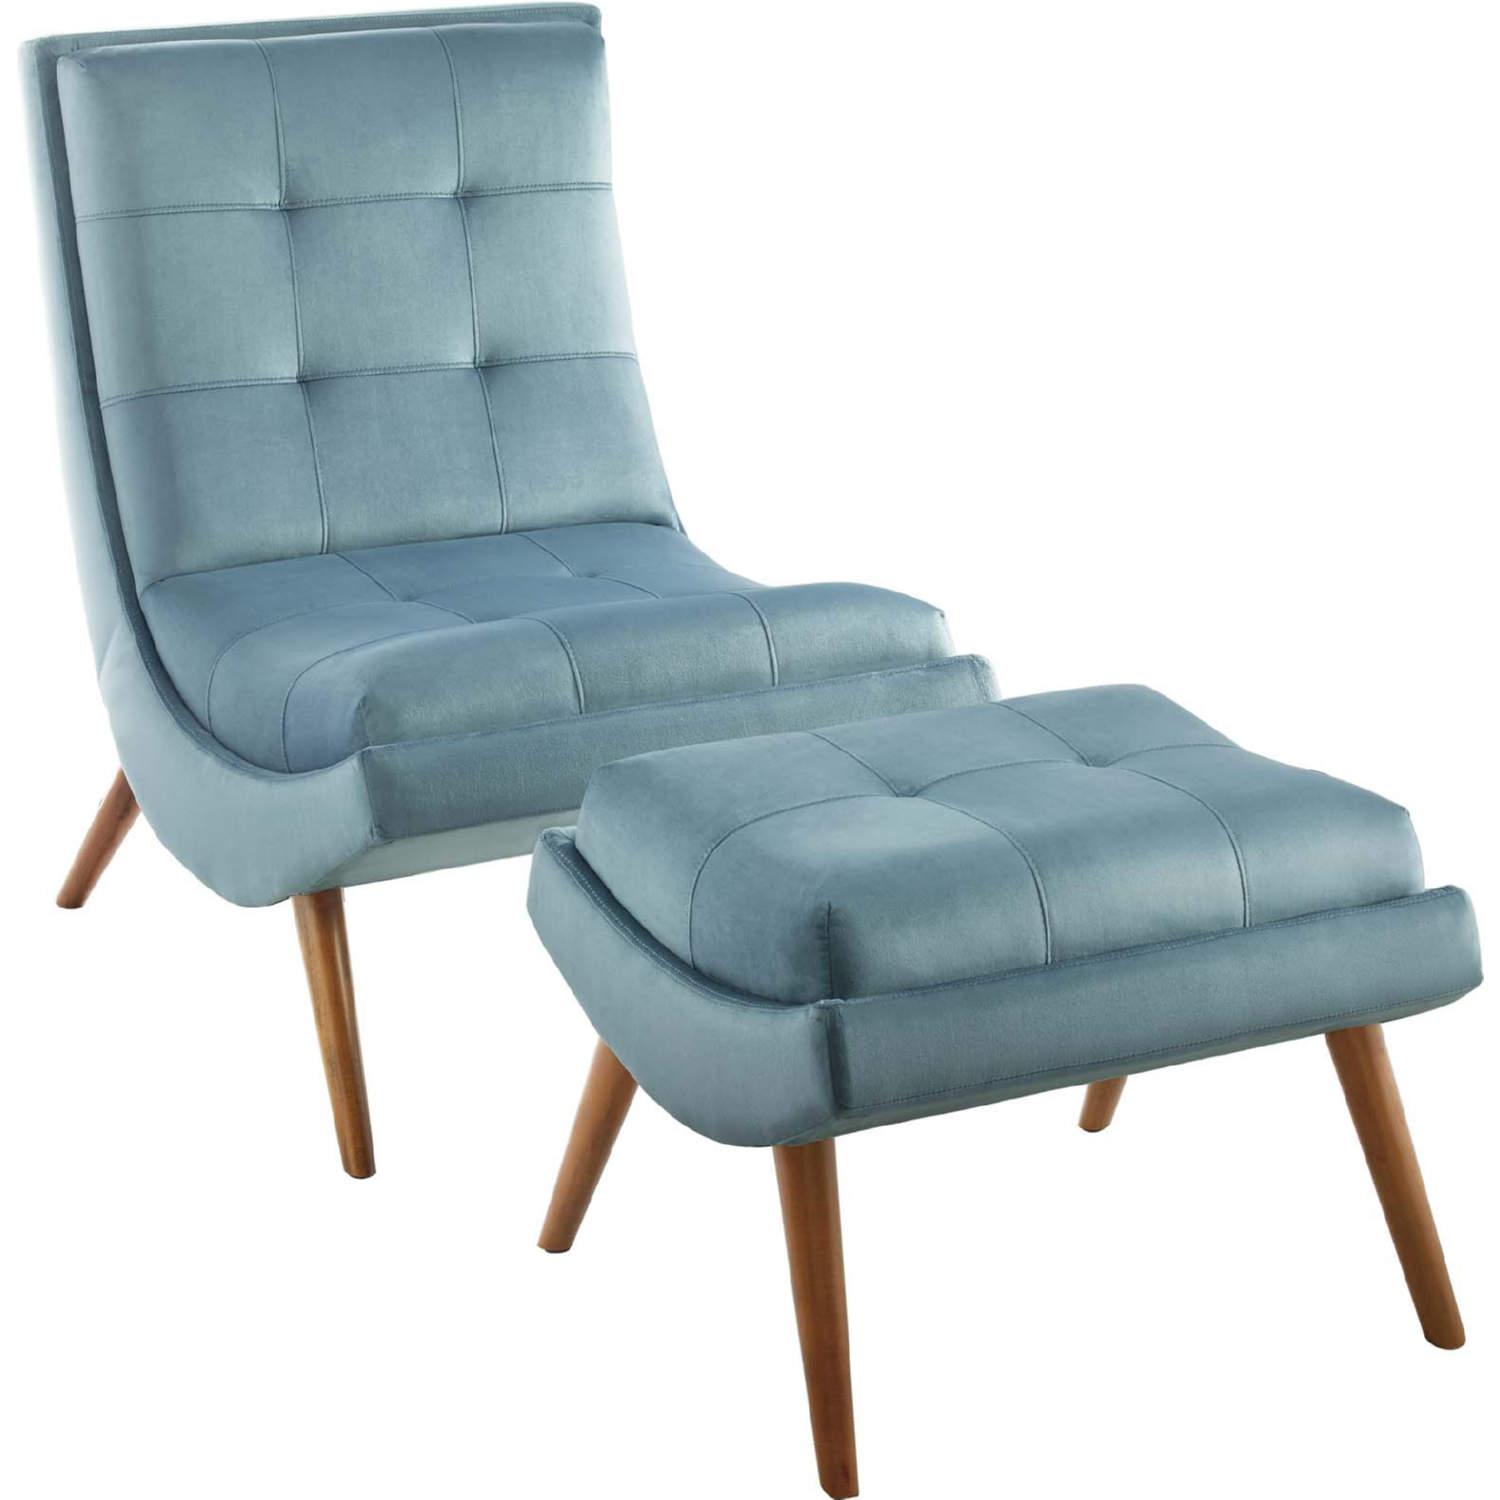 Ramp Armless Lounge Chair Ottoman In Tufted Light Blue Velvet By Modway